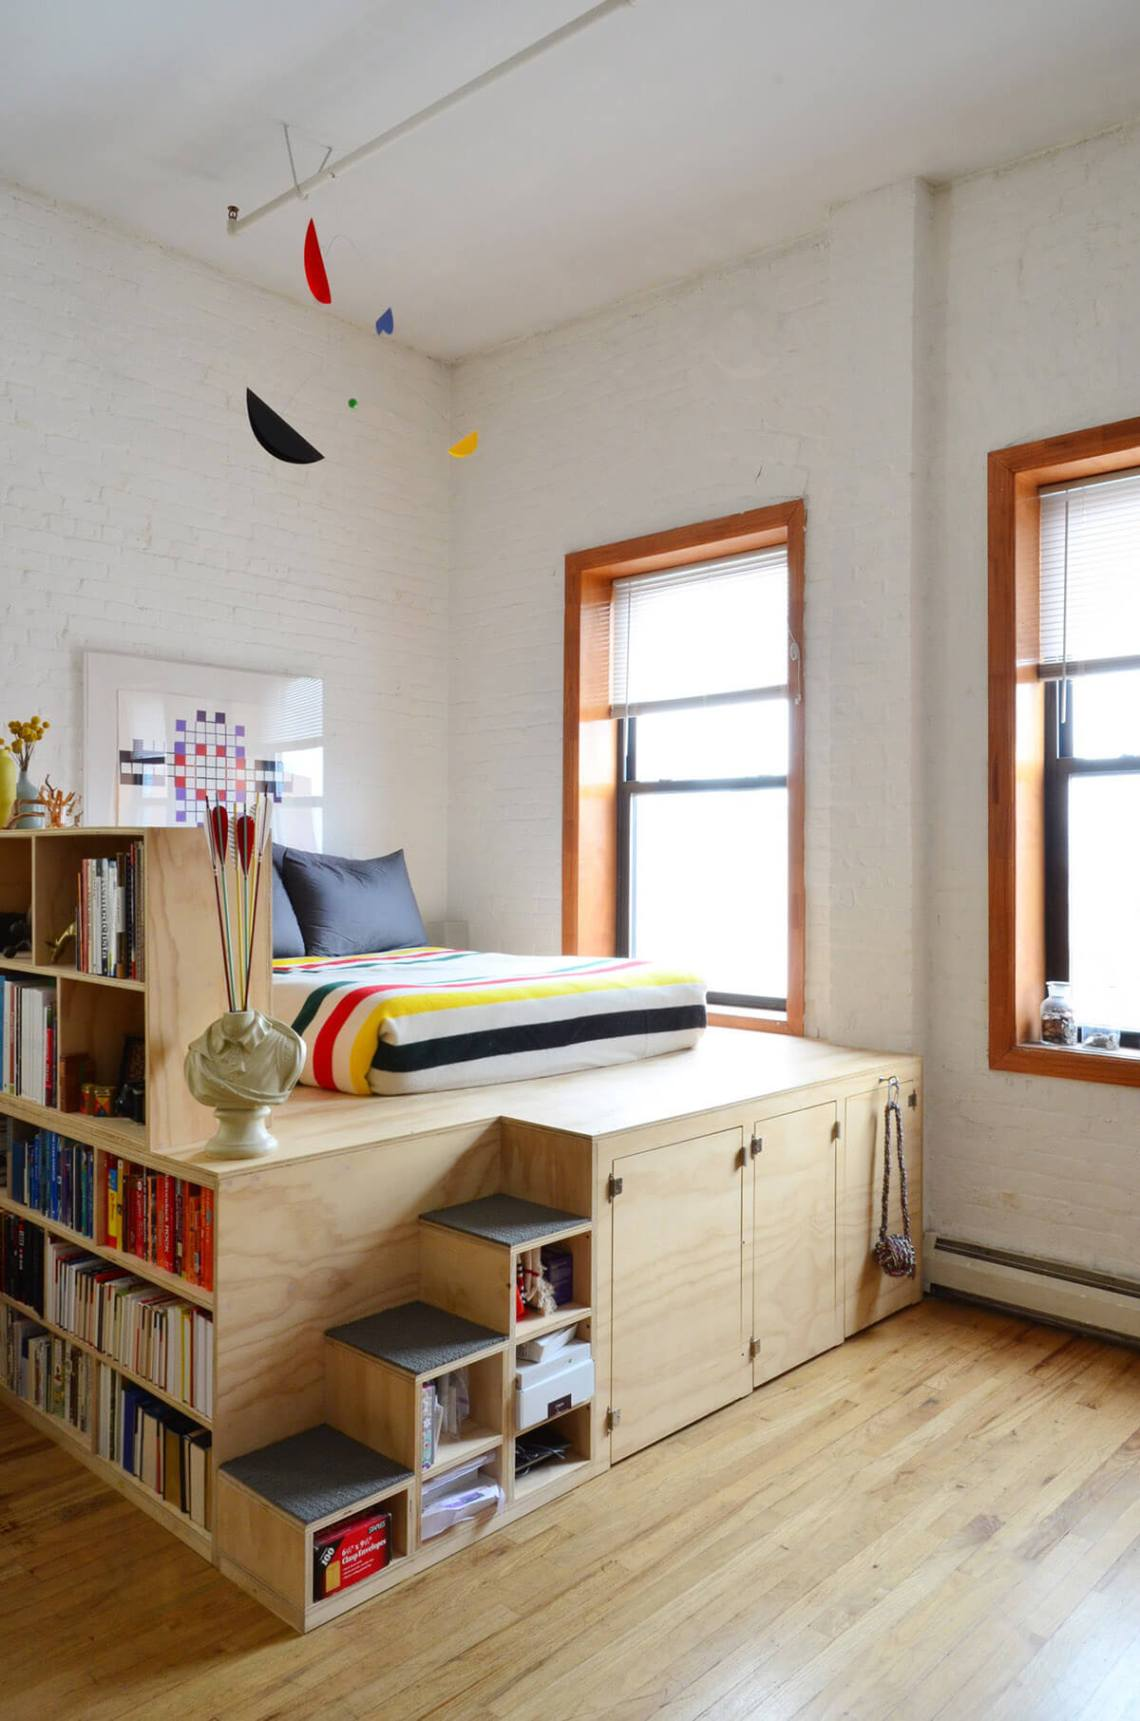 An Elevated Bed with Shelving and Storage — Homebnc